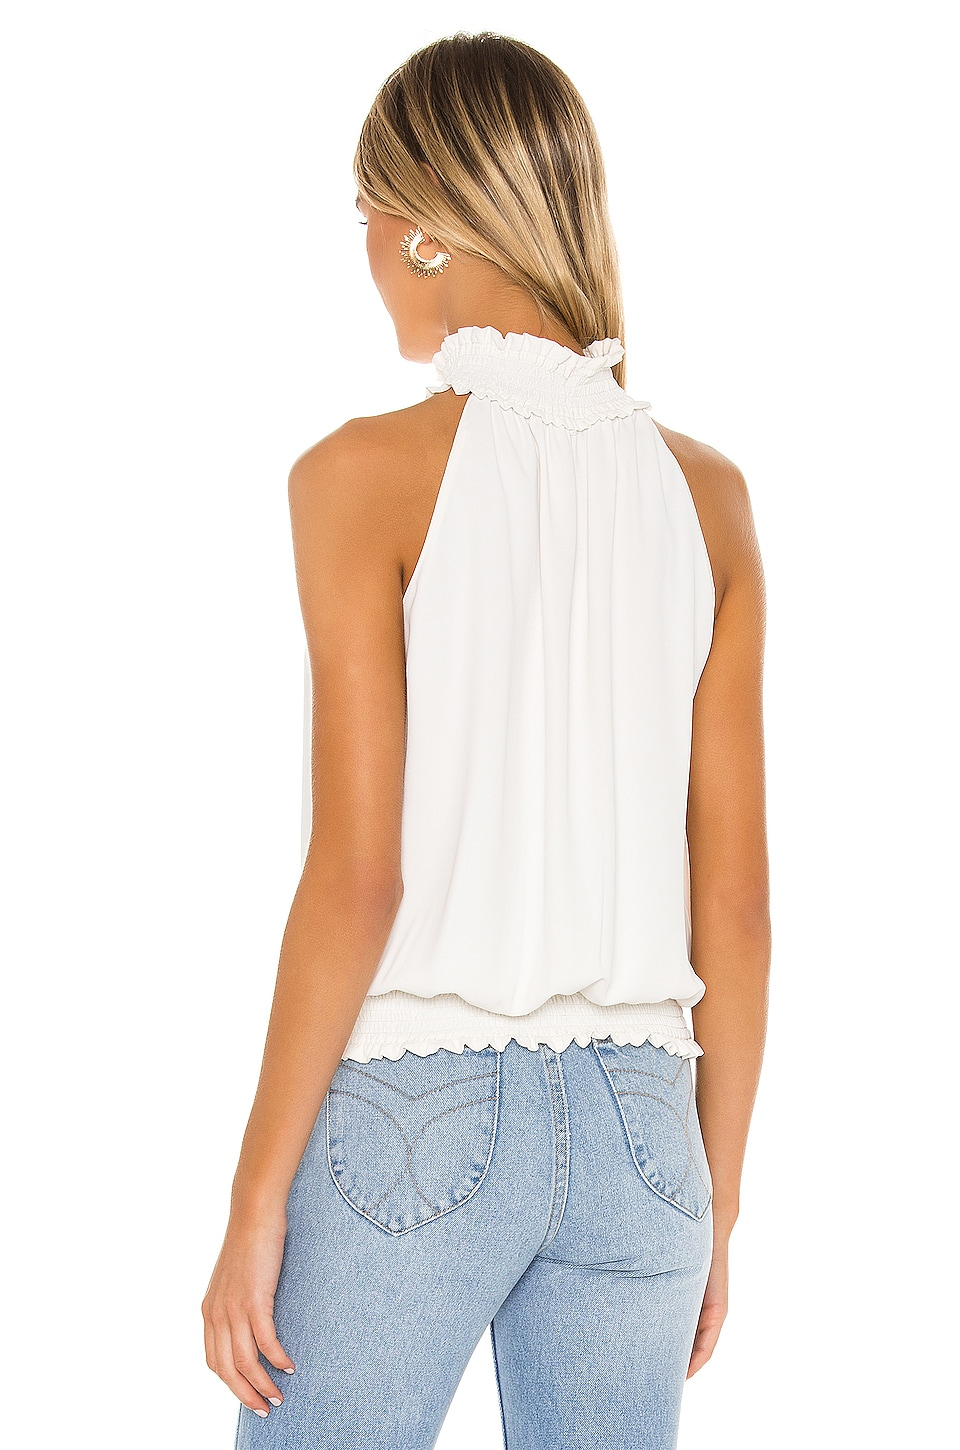 Kimmie Mock Neck Top, view 3, click to view large image.